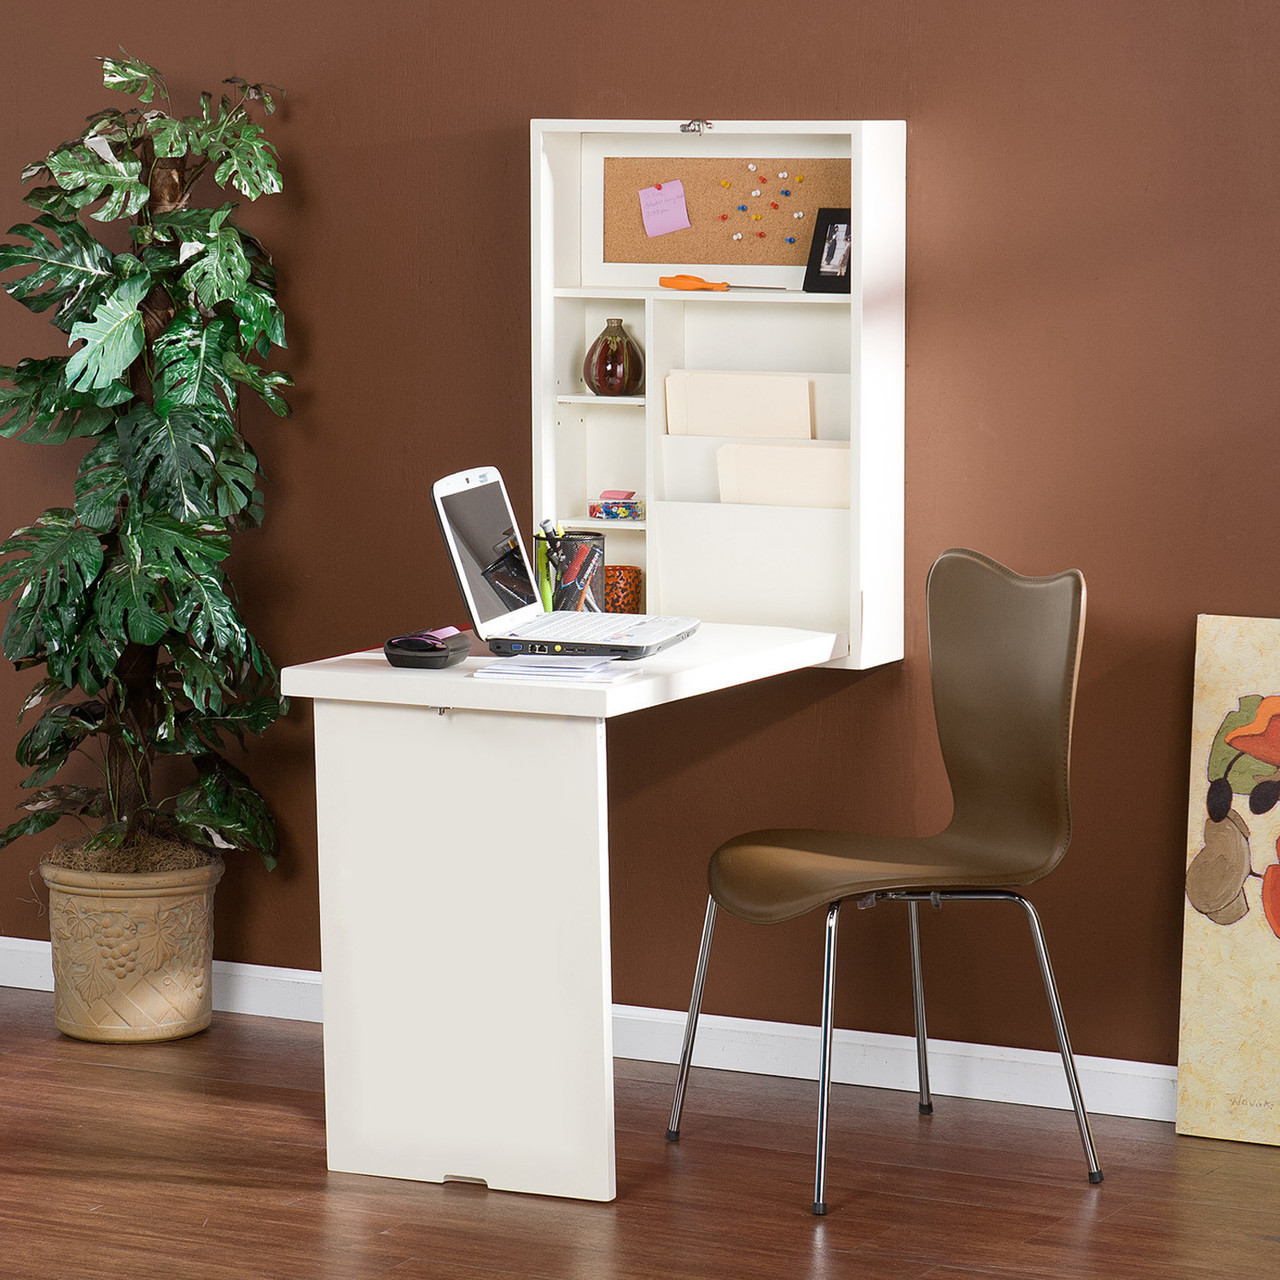 Wall Mount Fold Out Convertible Desk Computer Desk Laptop